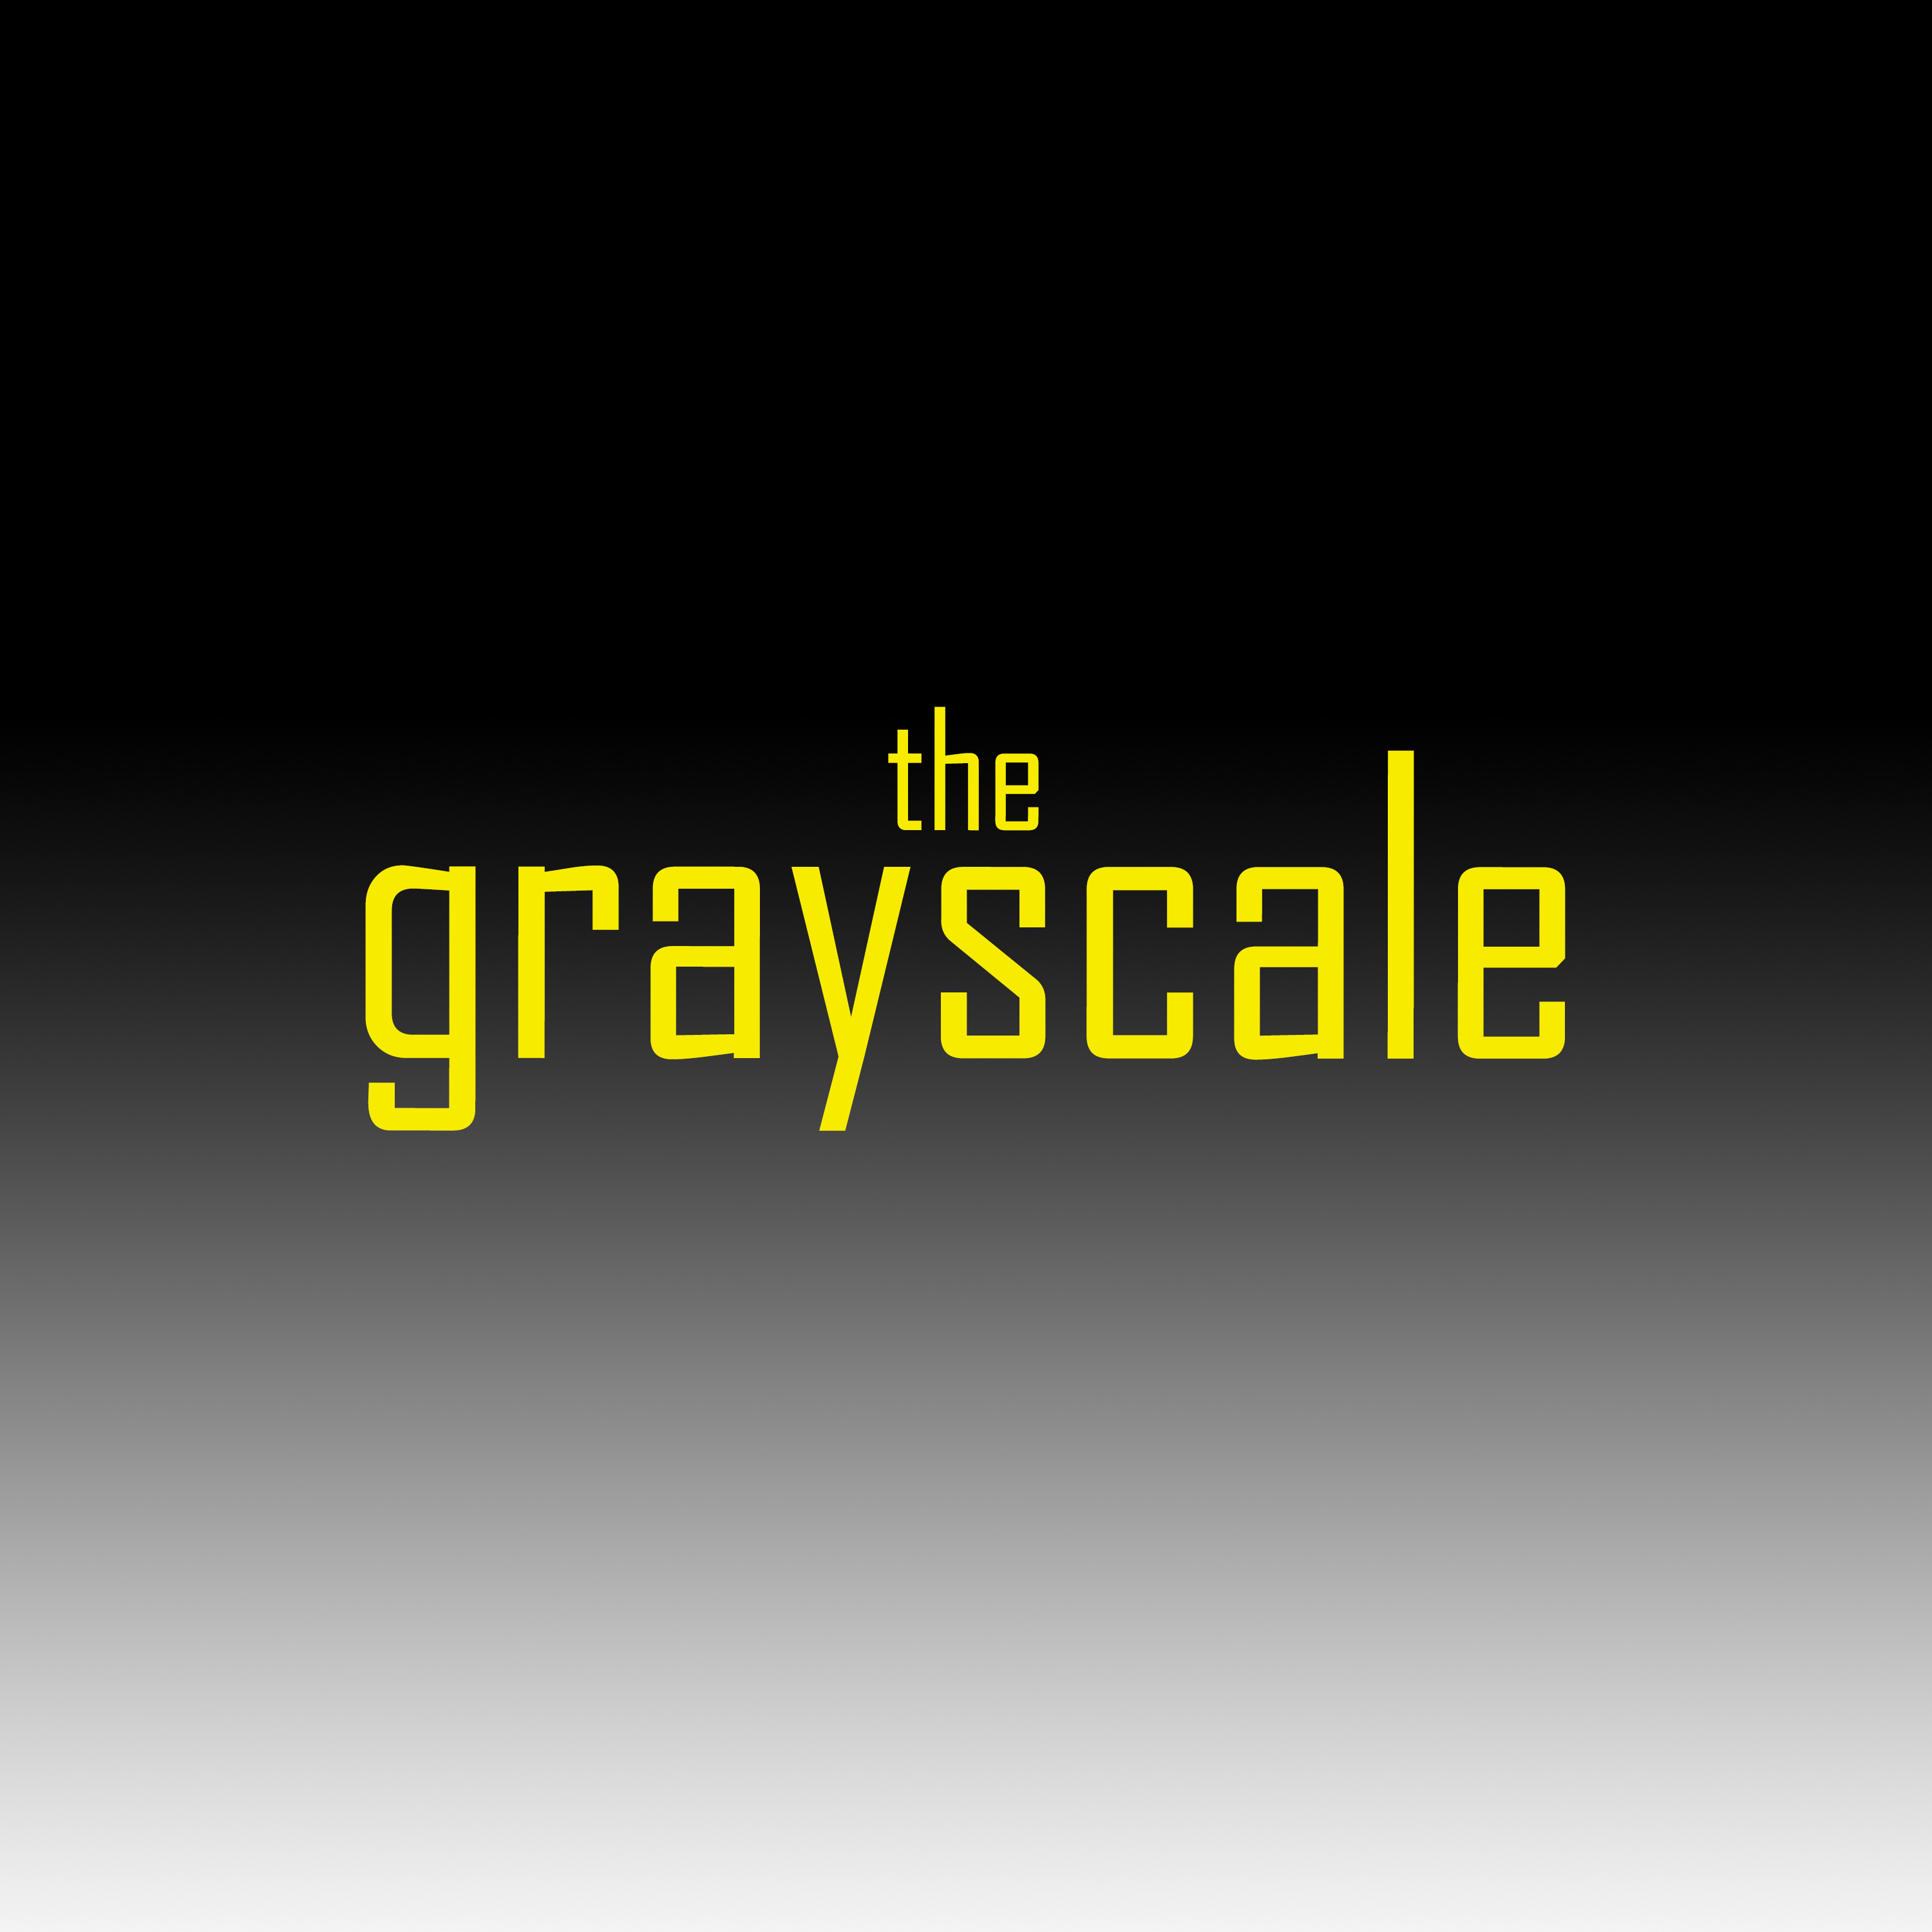 The Grayscale